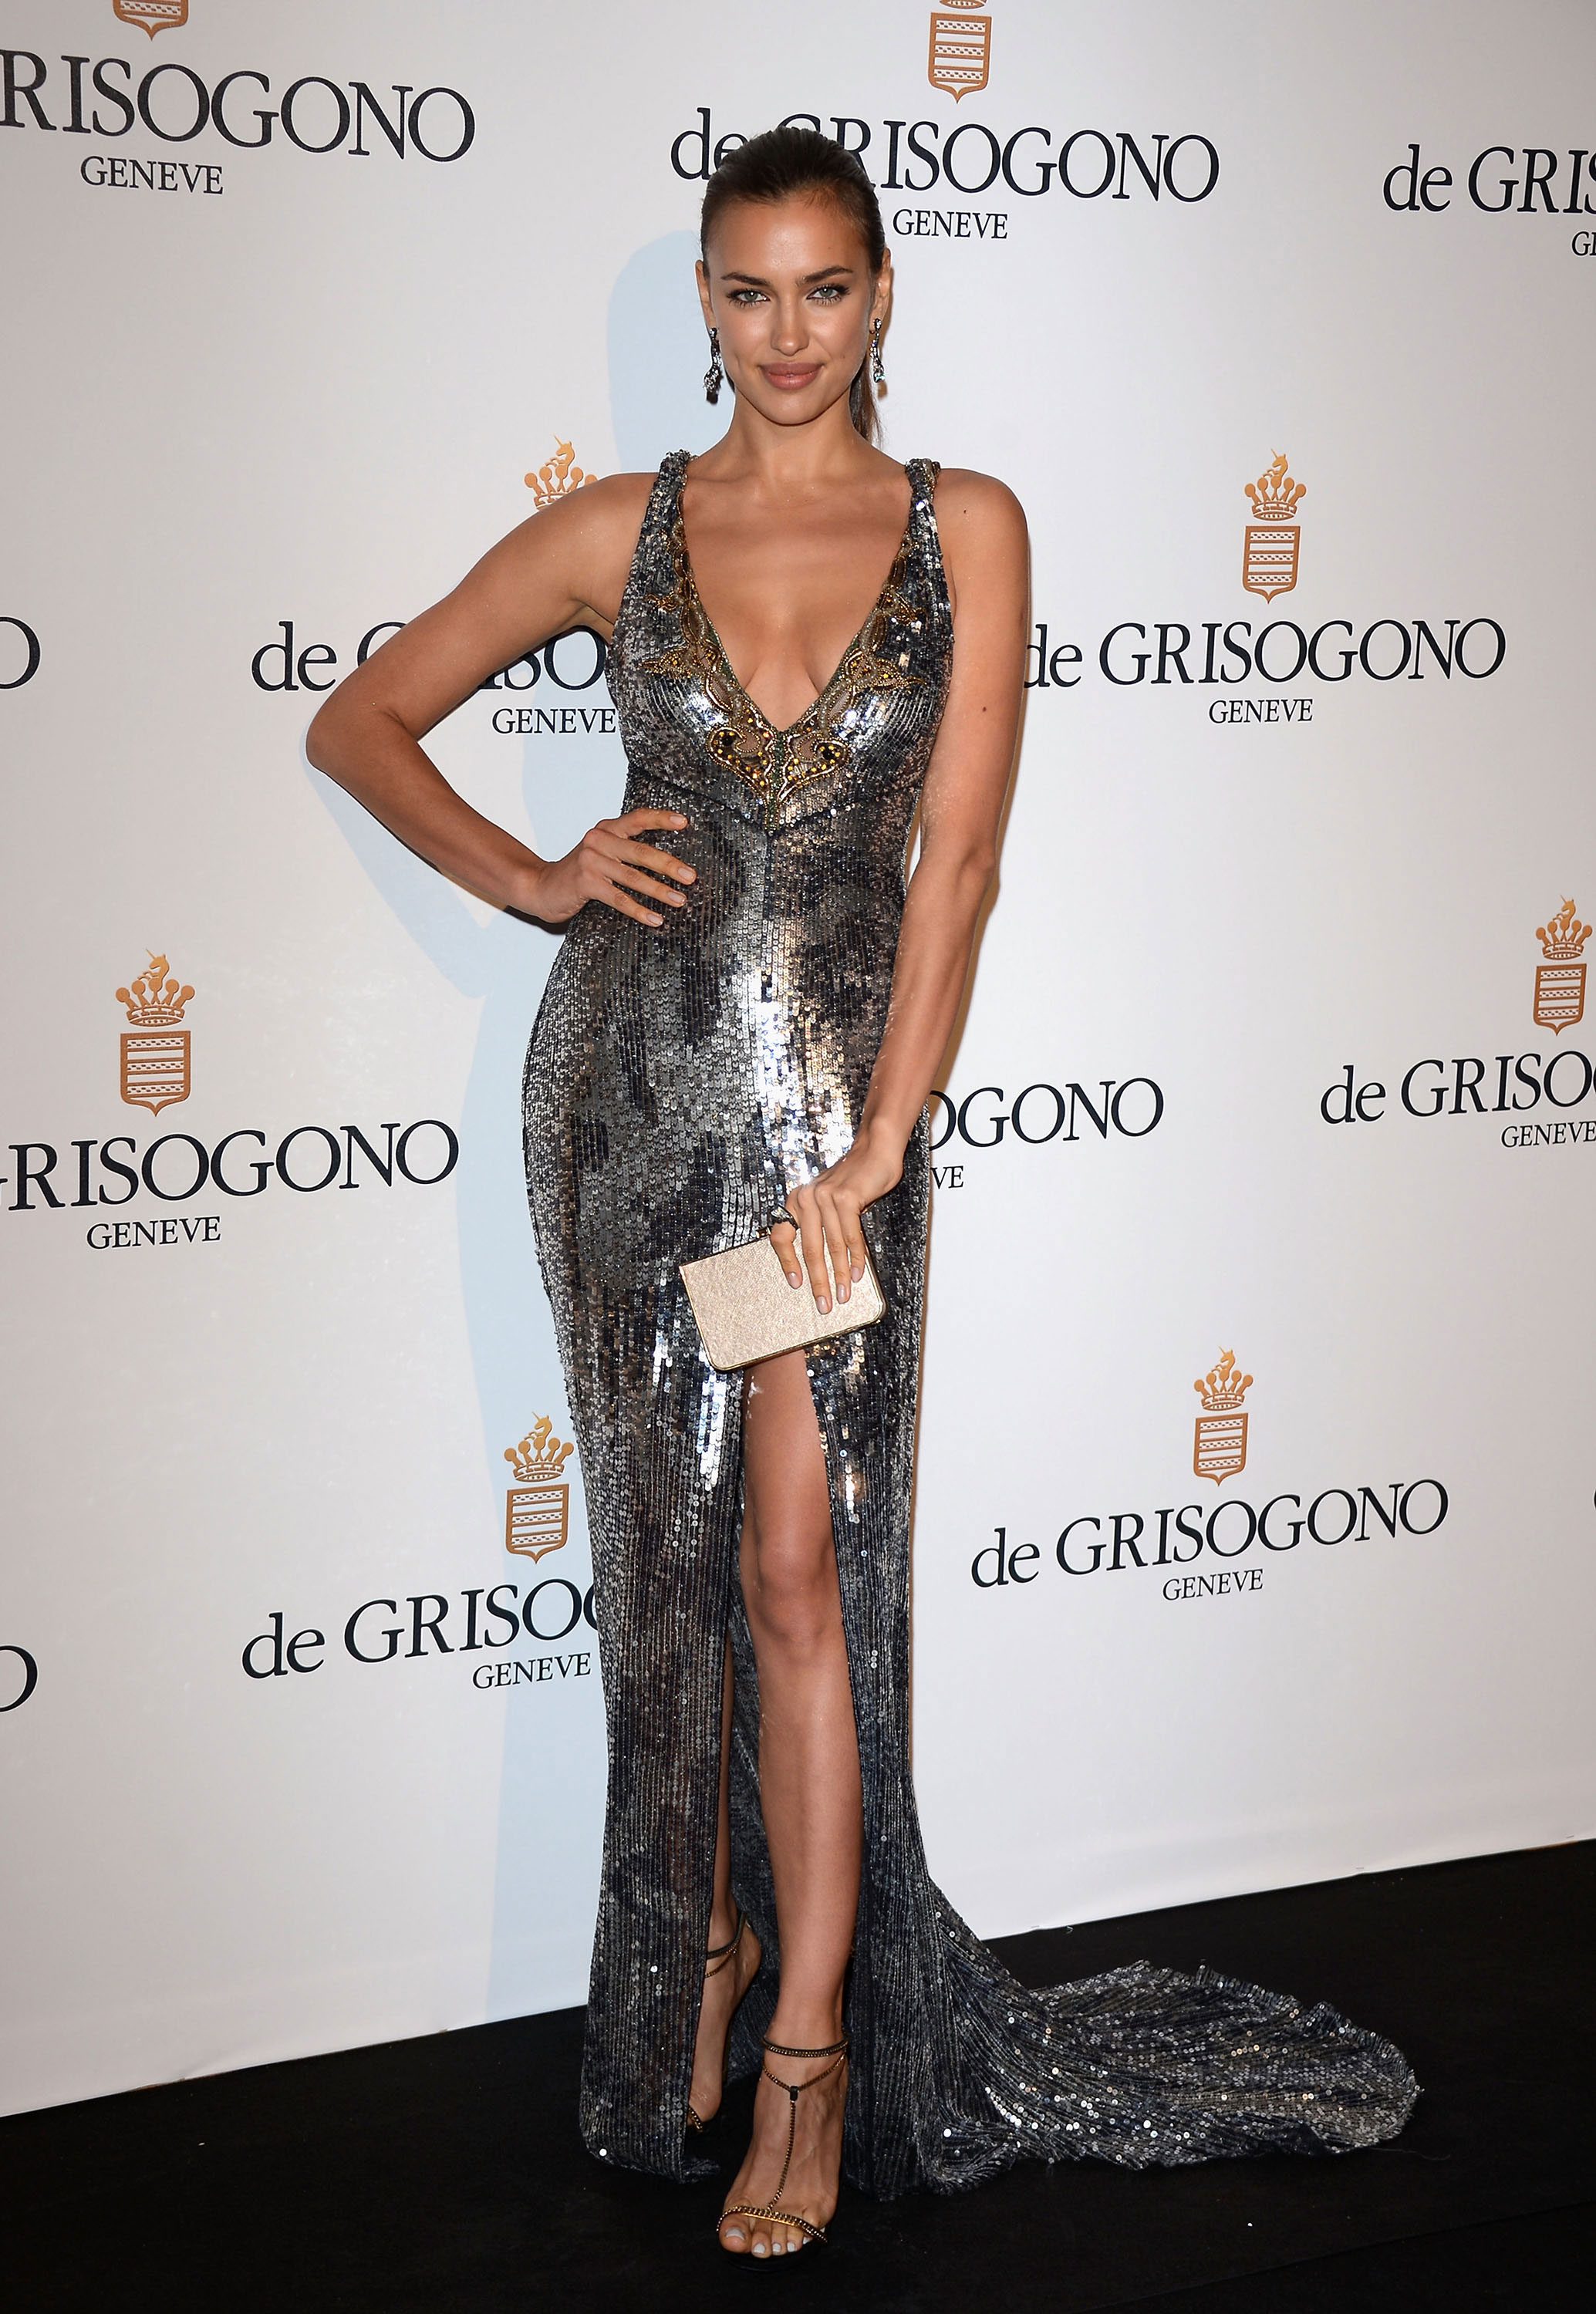 Irina Shayk attends the de Grisogono Party during the 65th Annual Cannes Film Festival.